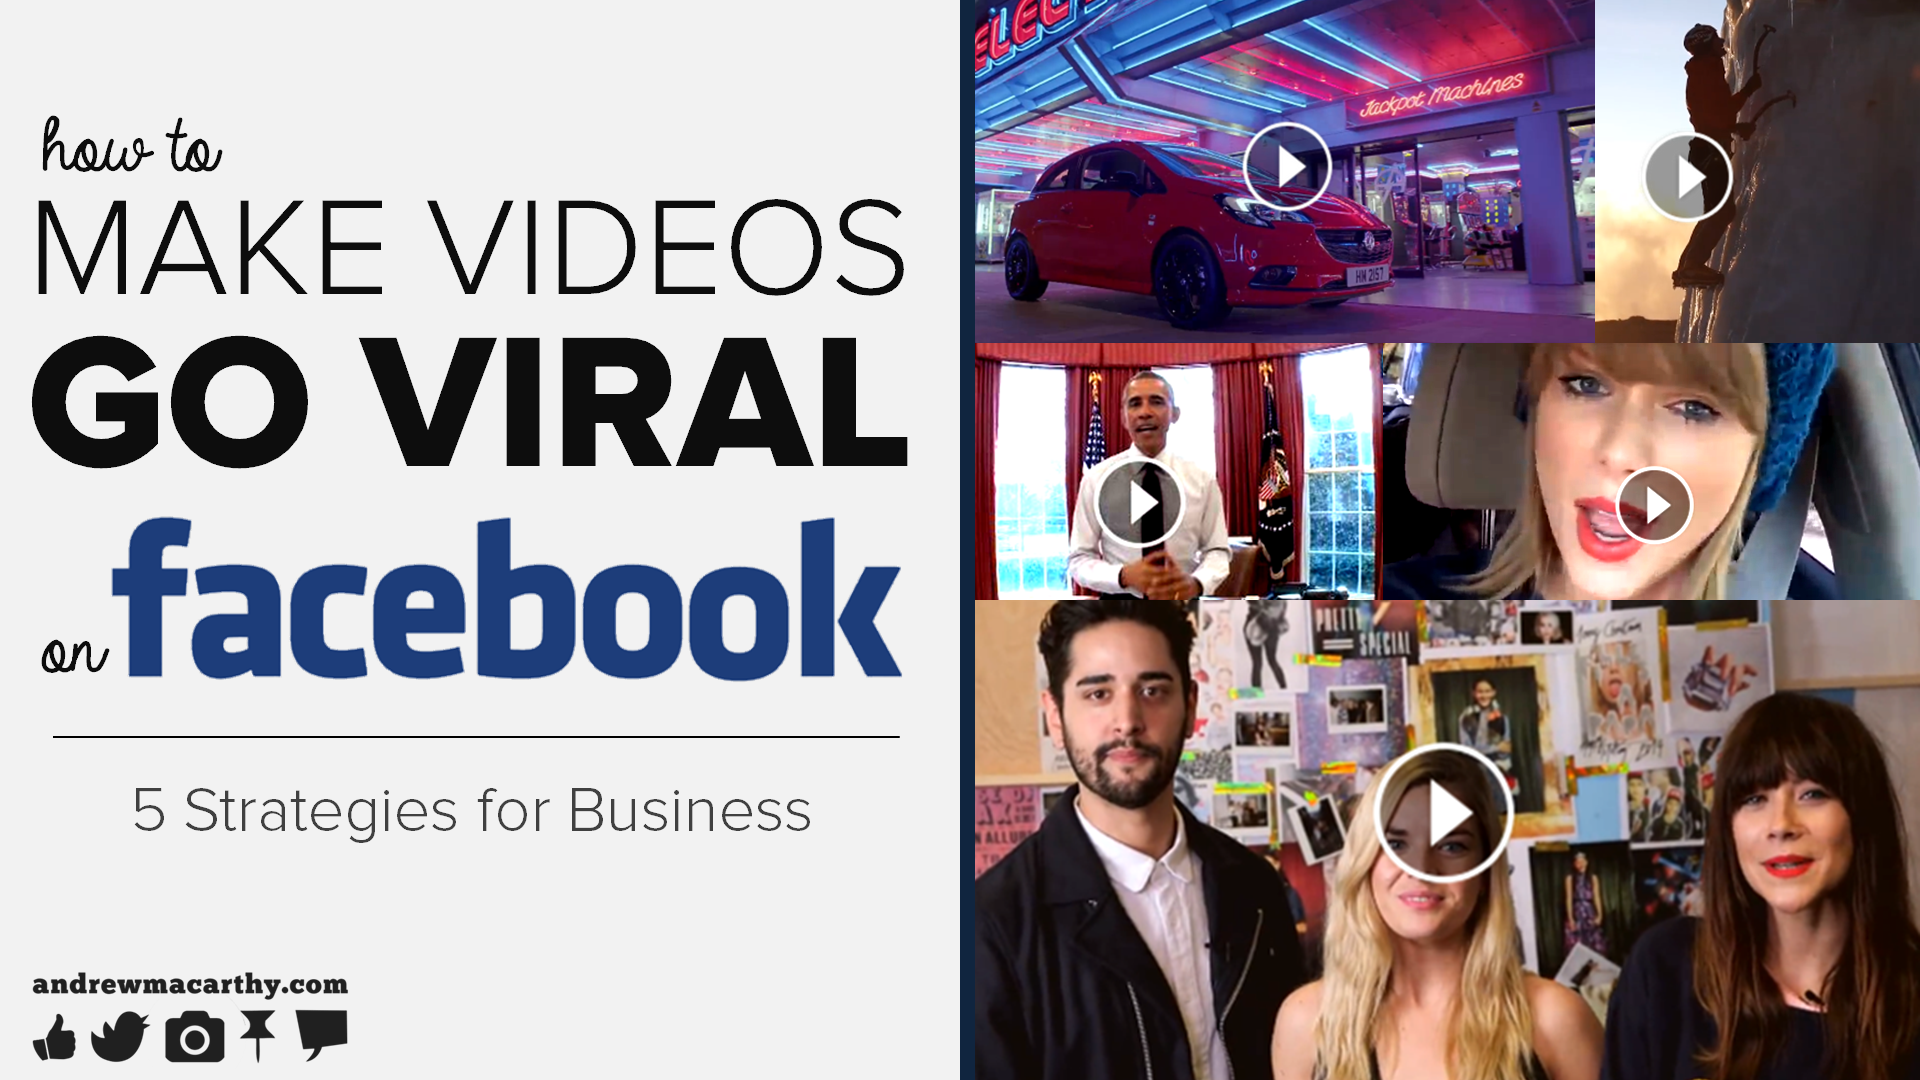 How to Make Videos Go Viral on Facebook - 5 Strategies For Business